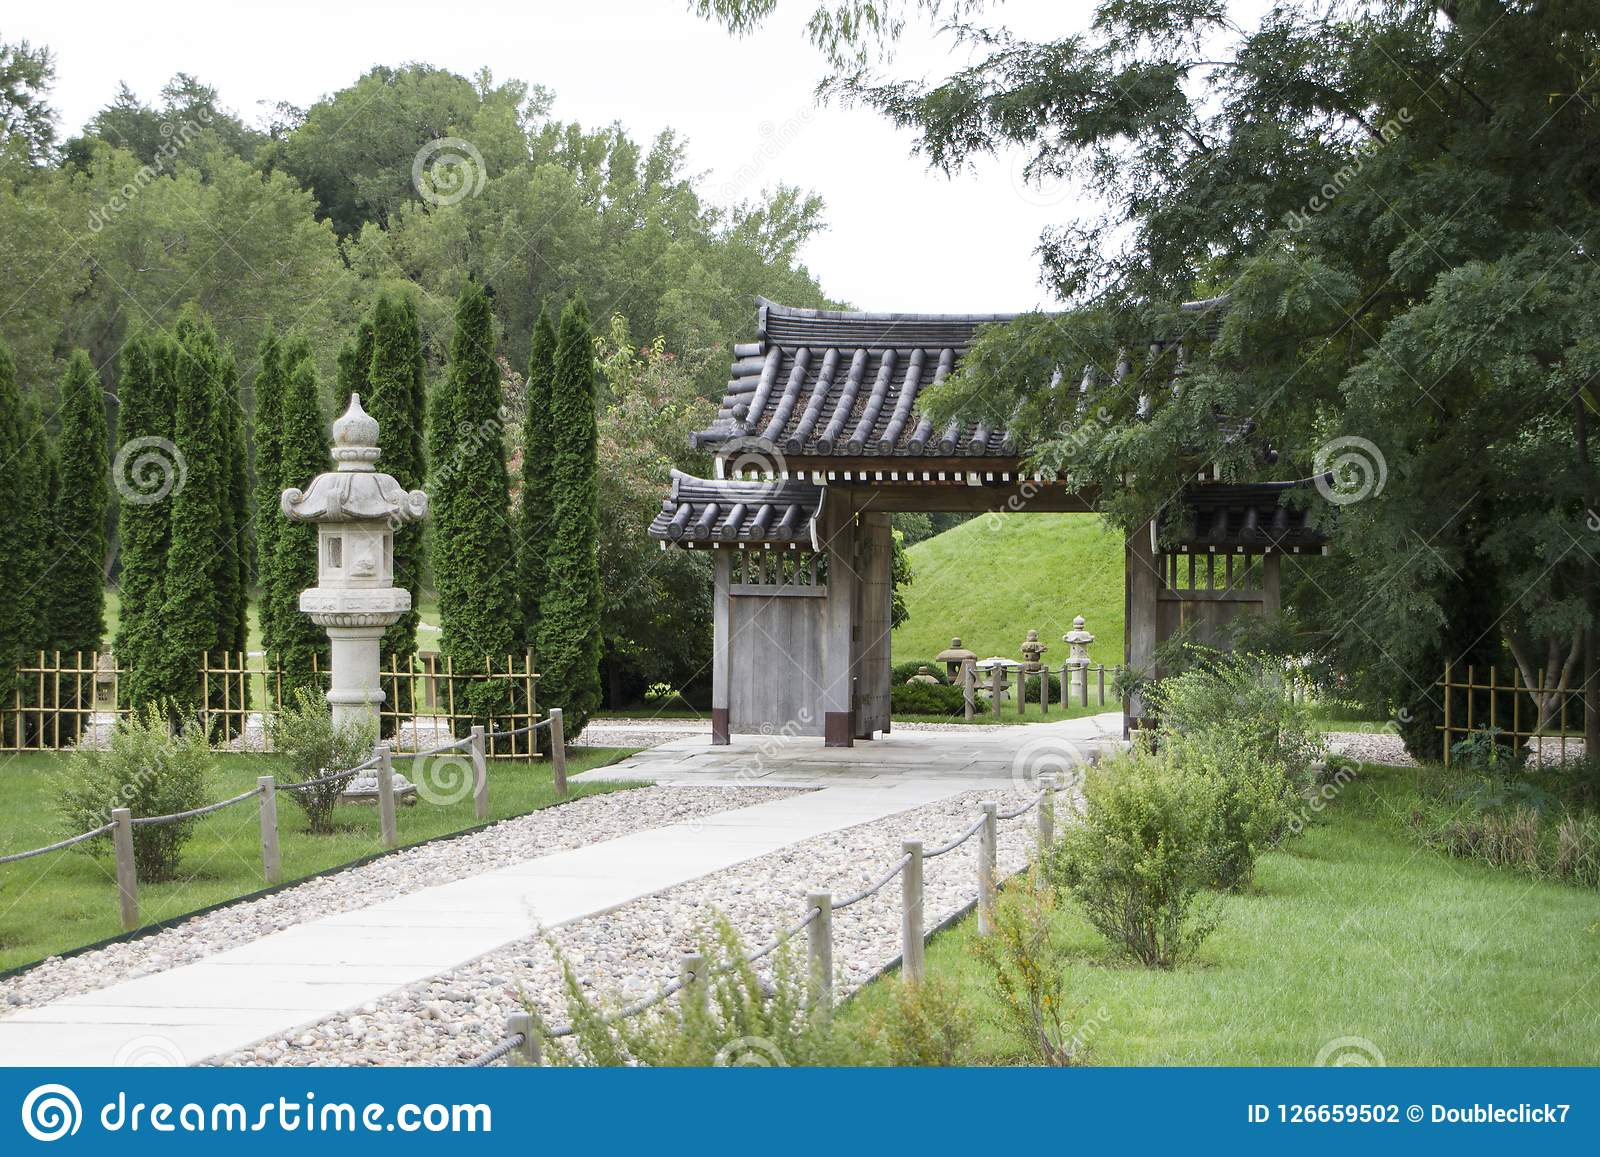 Formal Gardens On Display With Statuary, Interesting Outdoor Architecture  And A Sidewalk Lined With Stones.